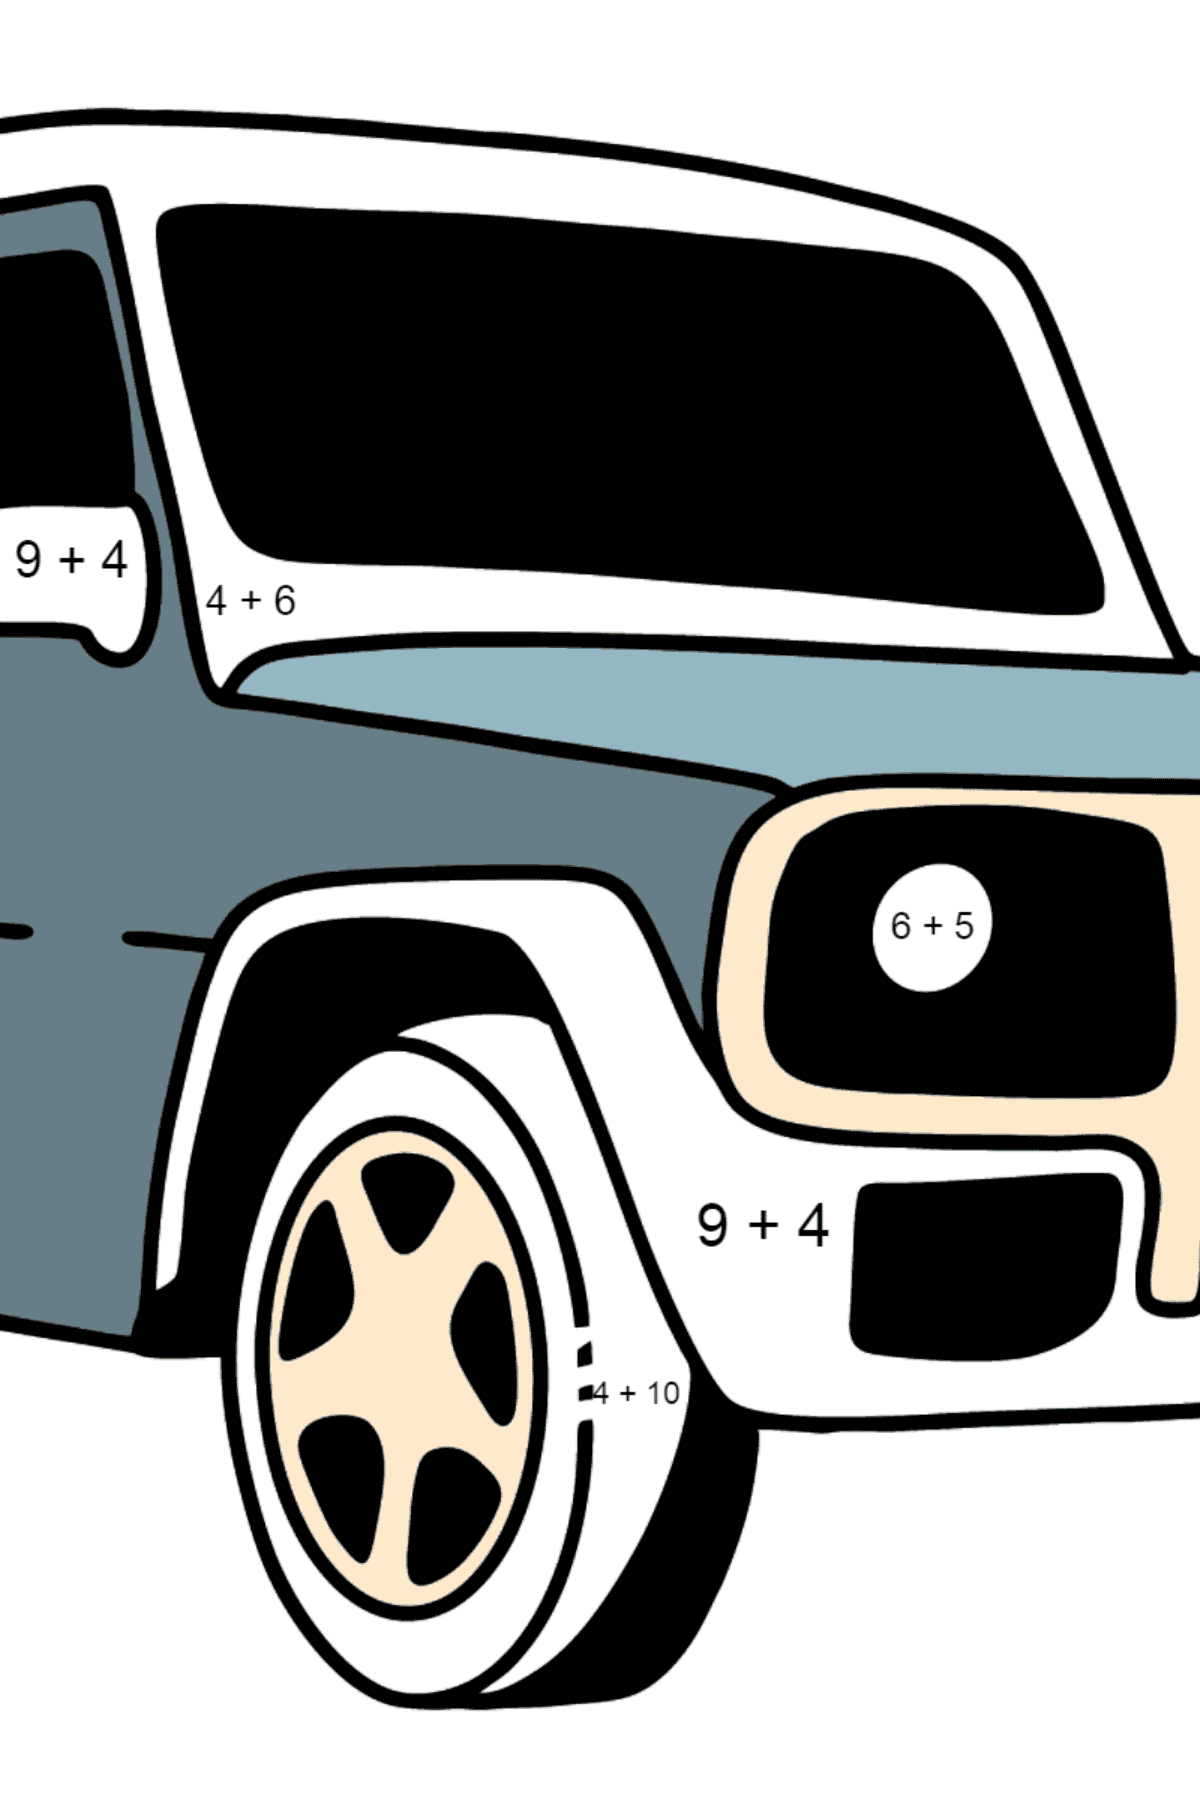 Mercedes-Benz G-Class SUV coloring page - Math Coloring - Addition for Kids